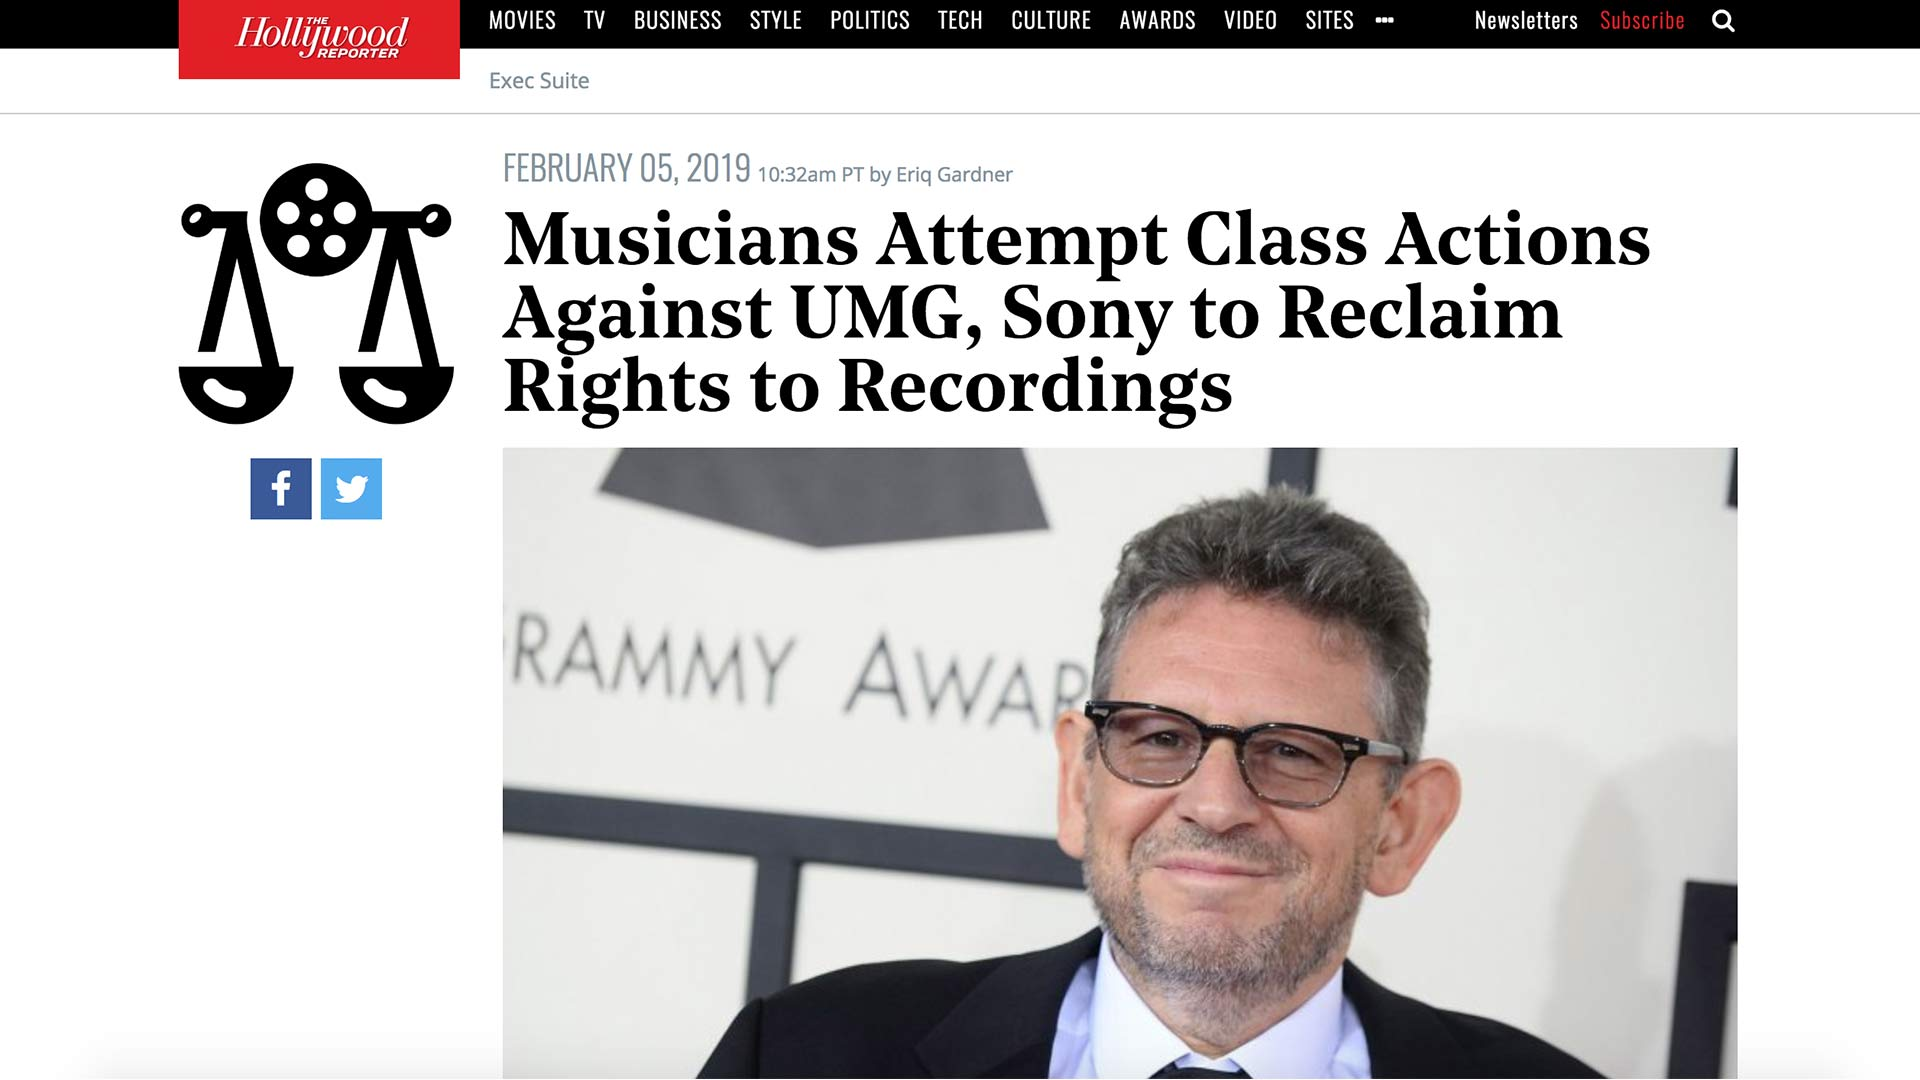 Fairness Rocks News Musicians Attempt Class Actions Against UMG, Sony to Reclaim Rights to Recordings